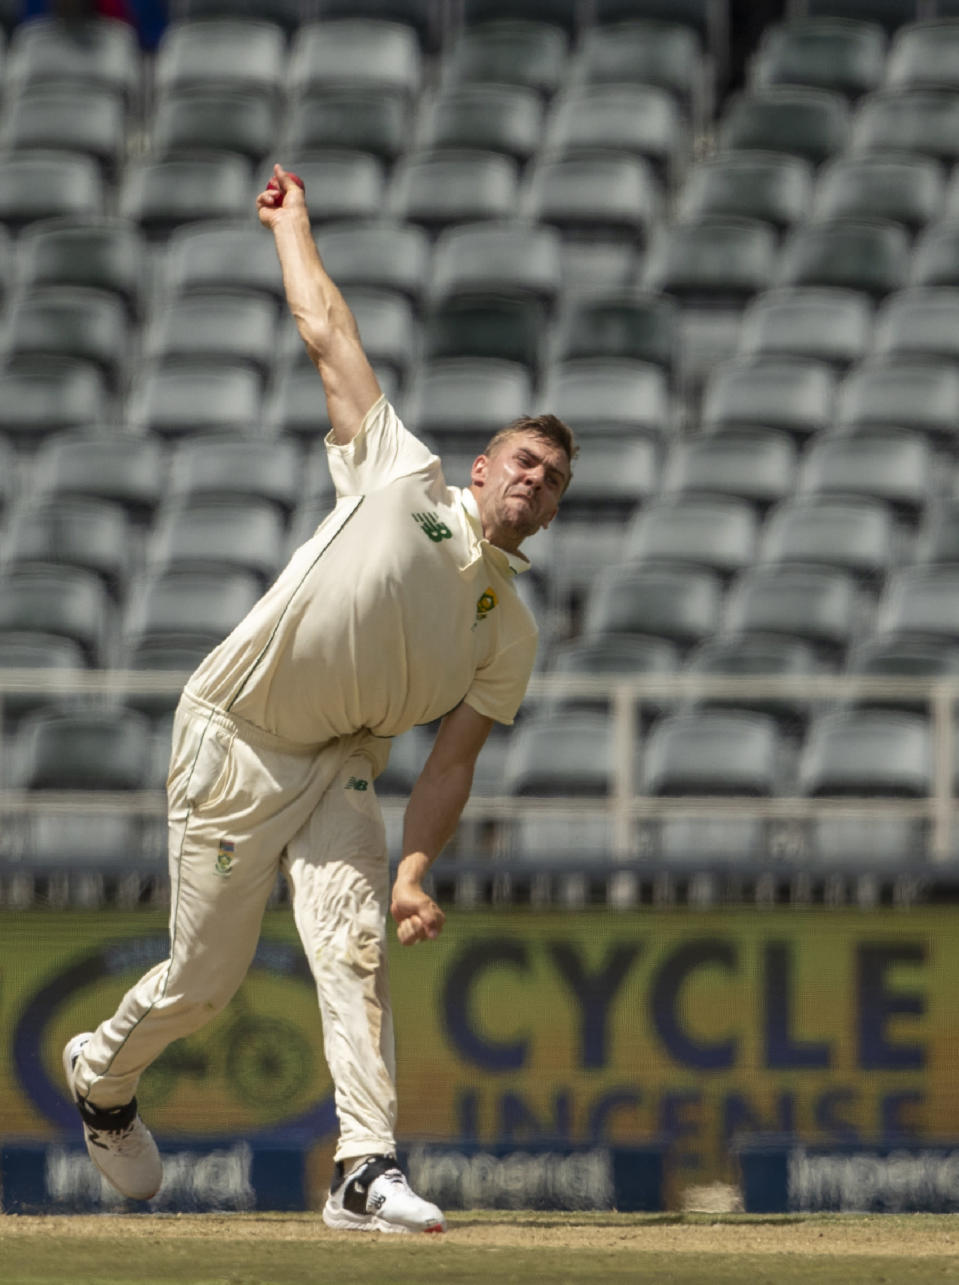 South Africa's bowler Anrich Nortje bowls during the 2nd Test cricket match between South Africa and Sri Lanka Wanderers stadium in Johannesburg, South Africa, Sunday, Jan. 3, 2021. (AP Photo/Themba Hadebe)